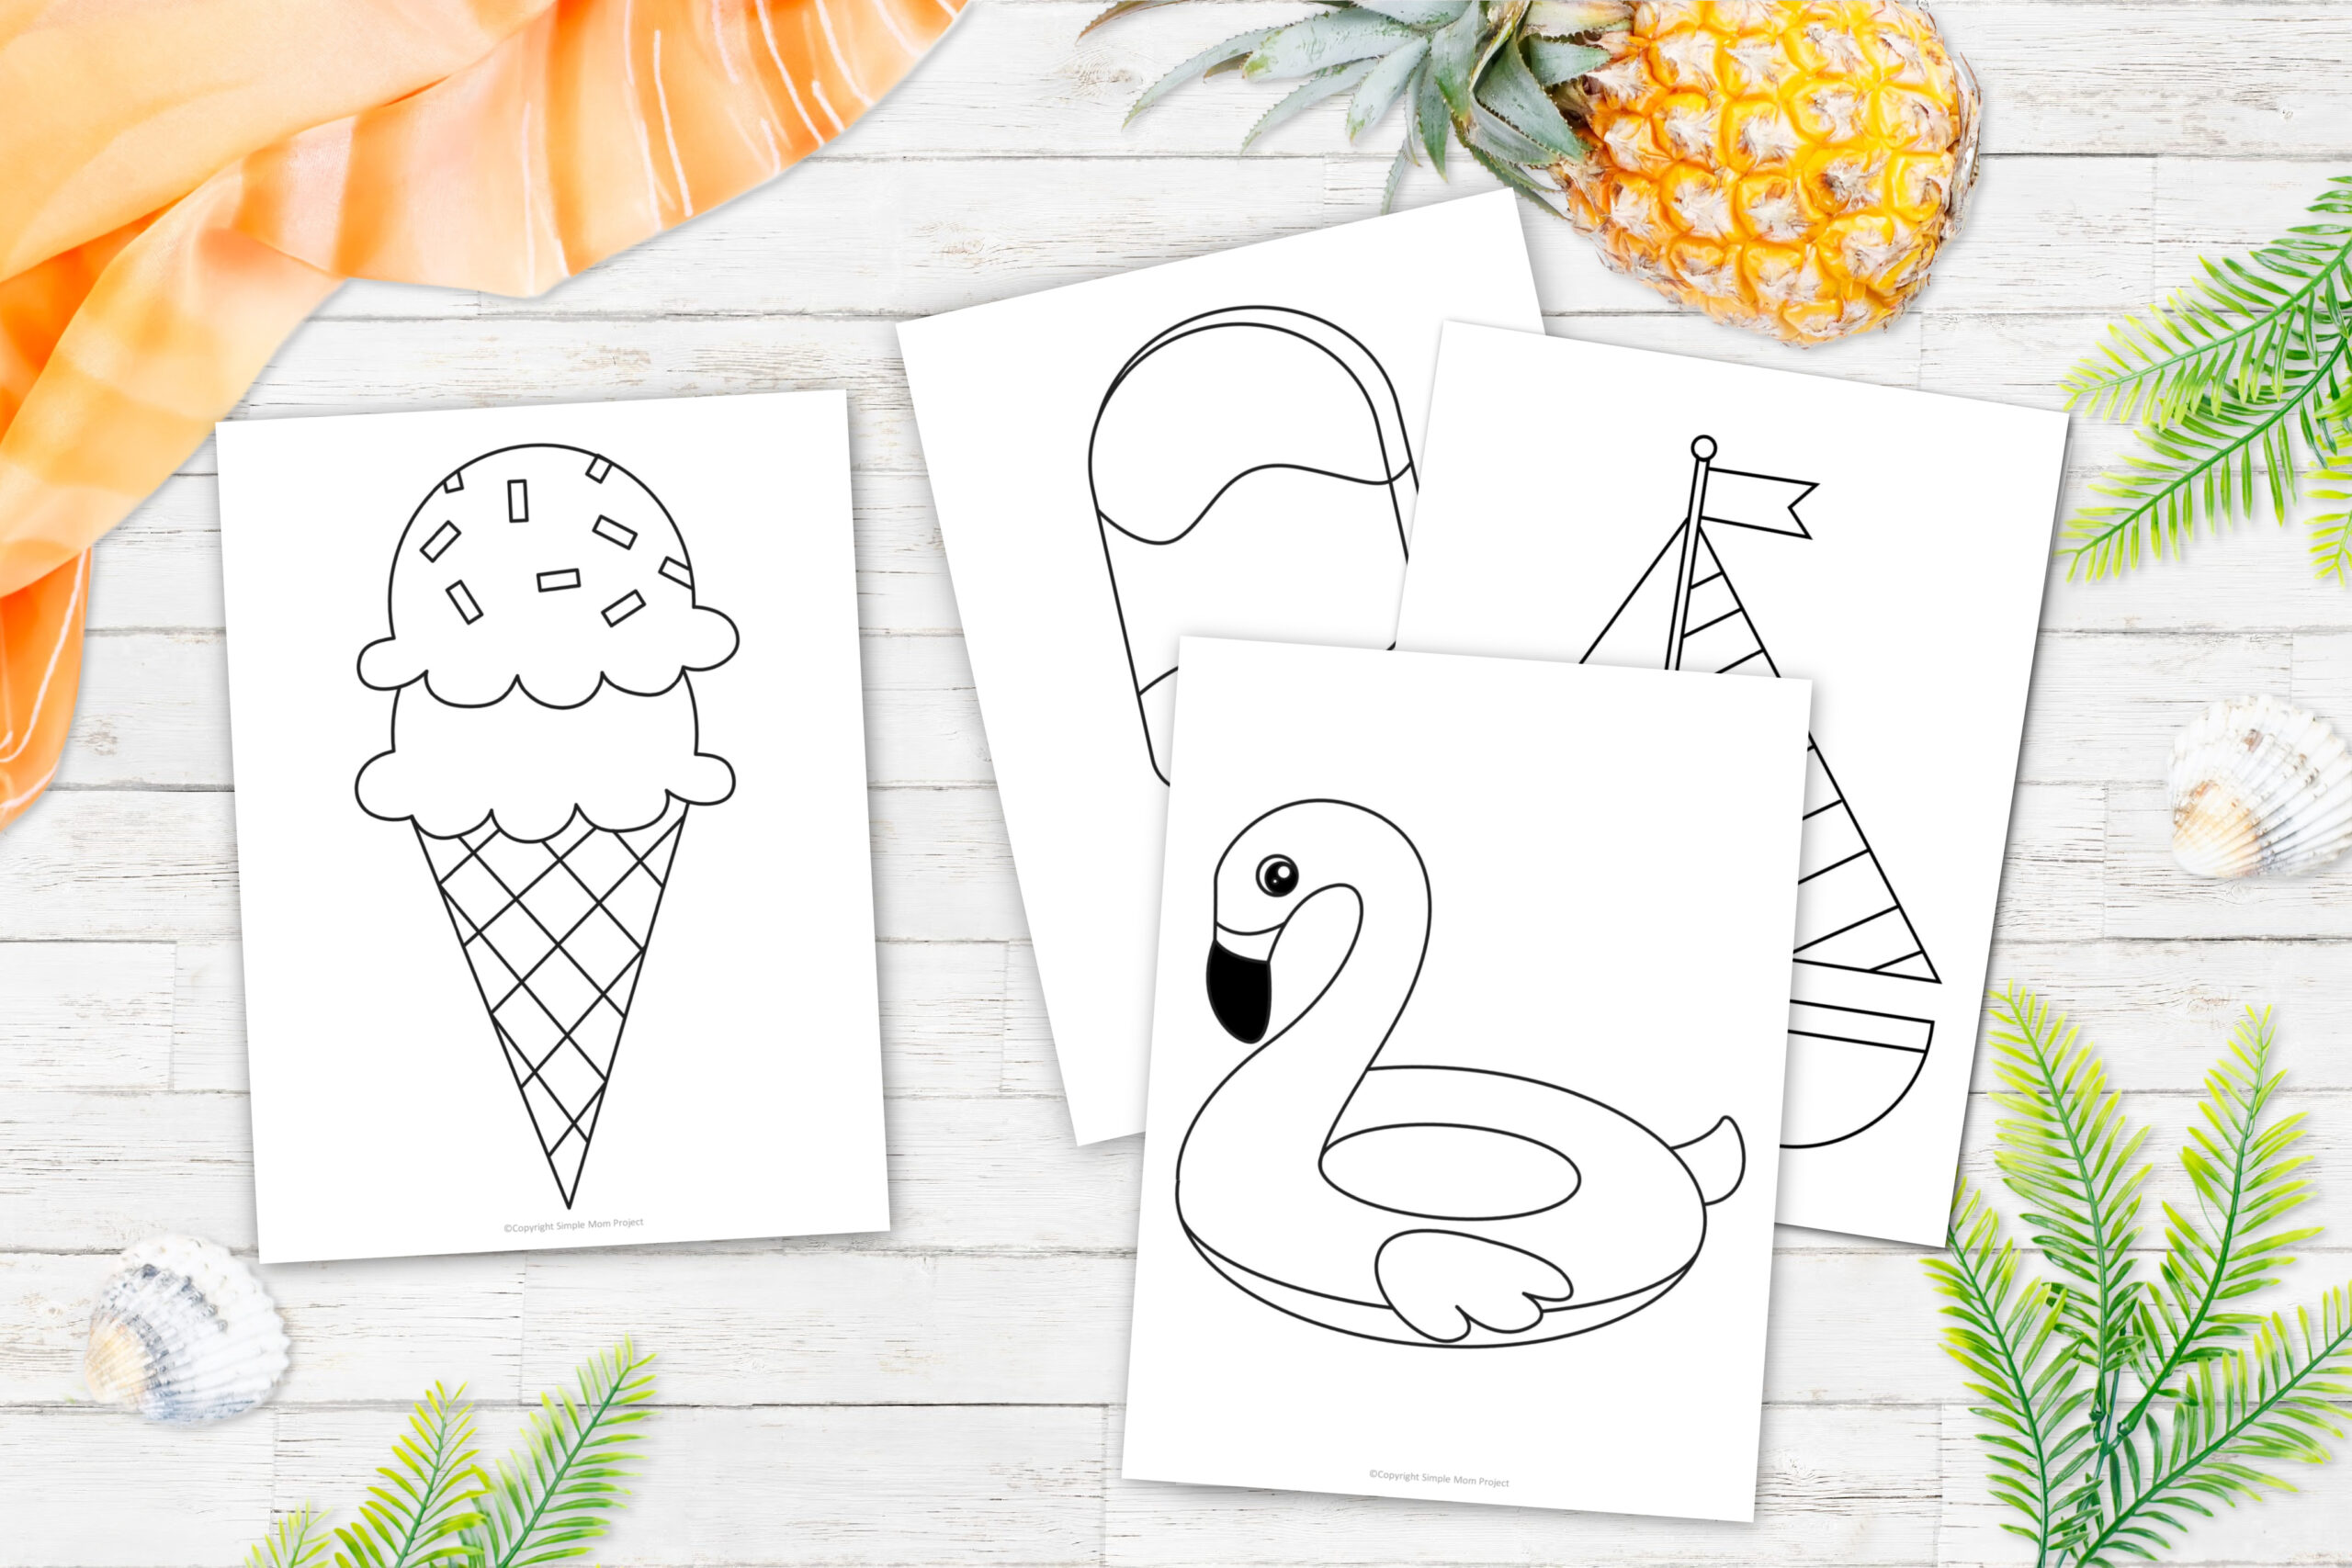 Printable Beach and Summer Templates for Kids preschoolers and toddlers